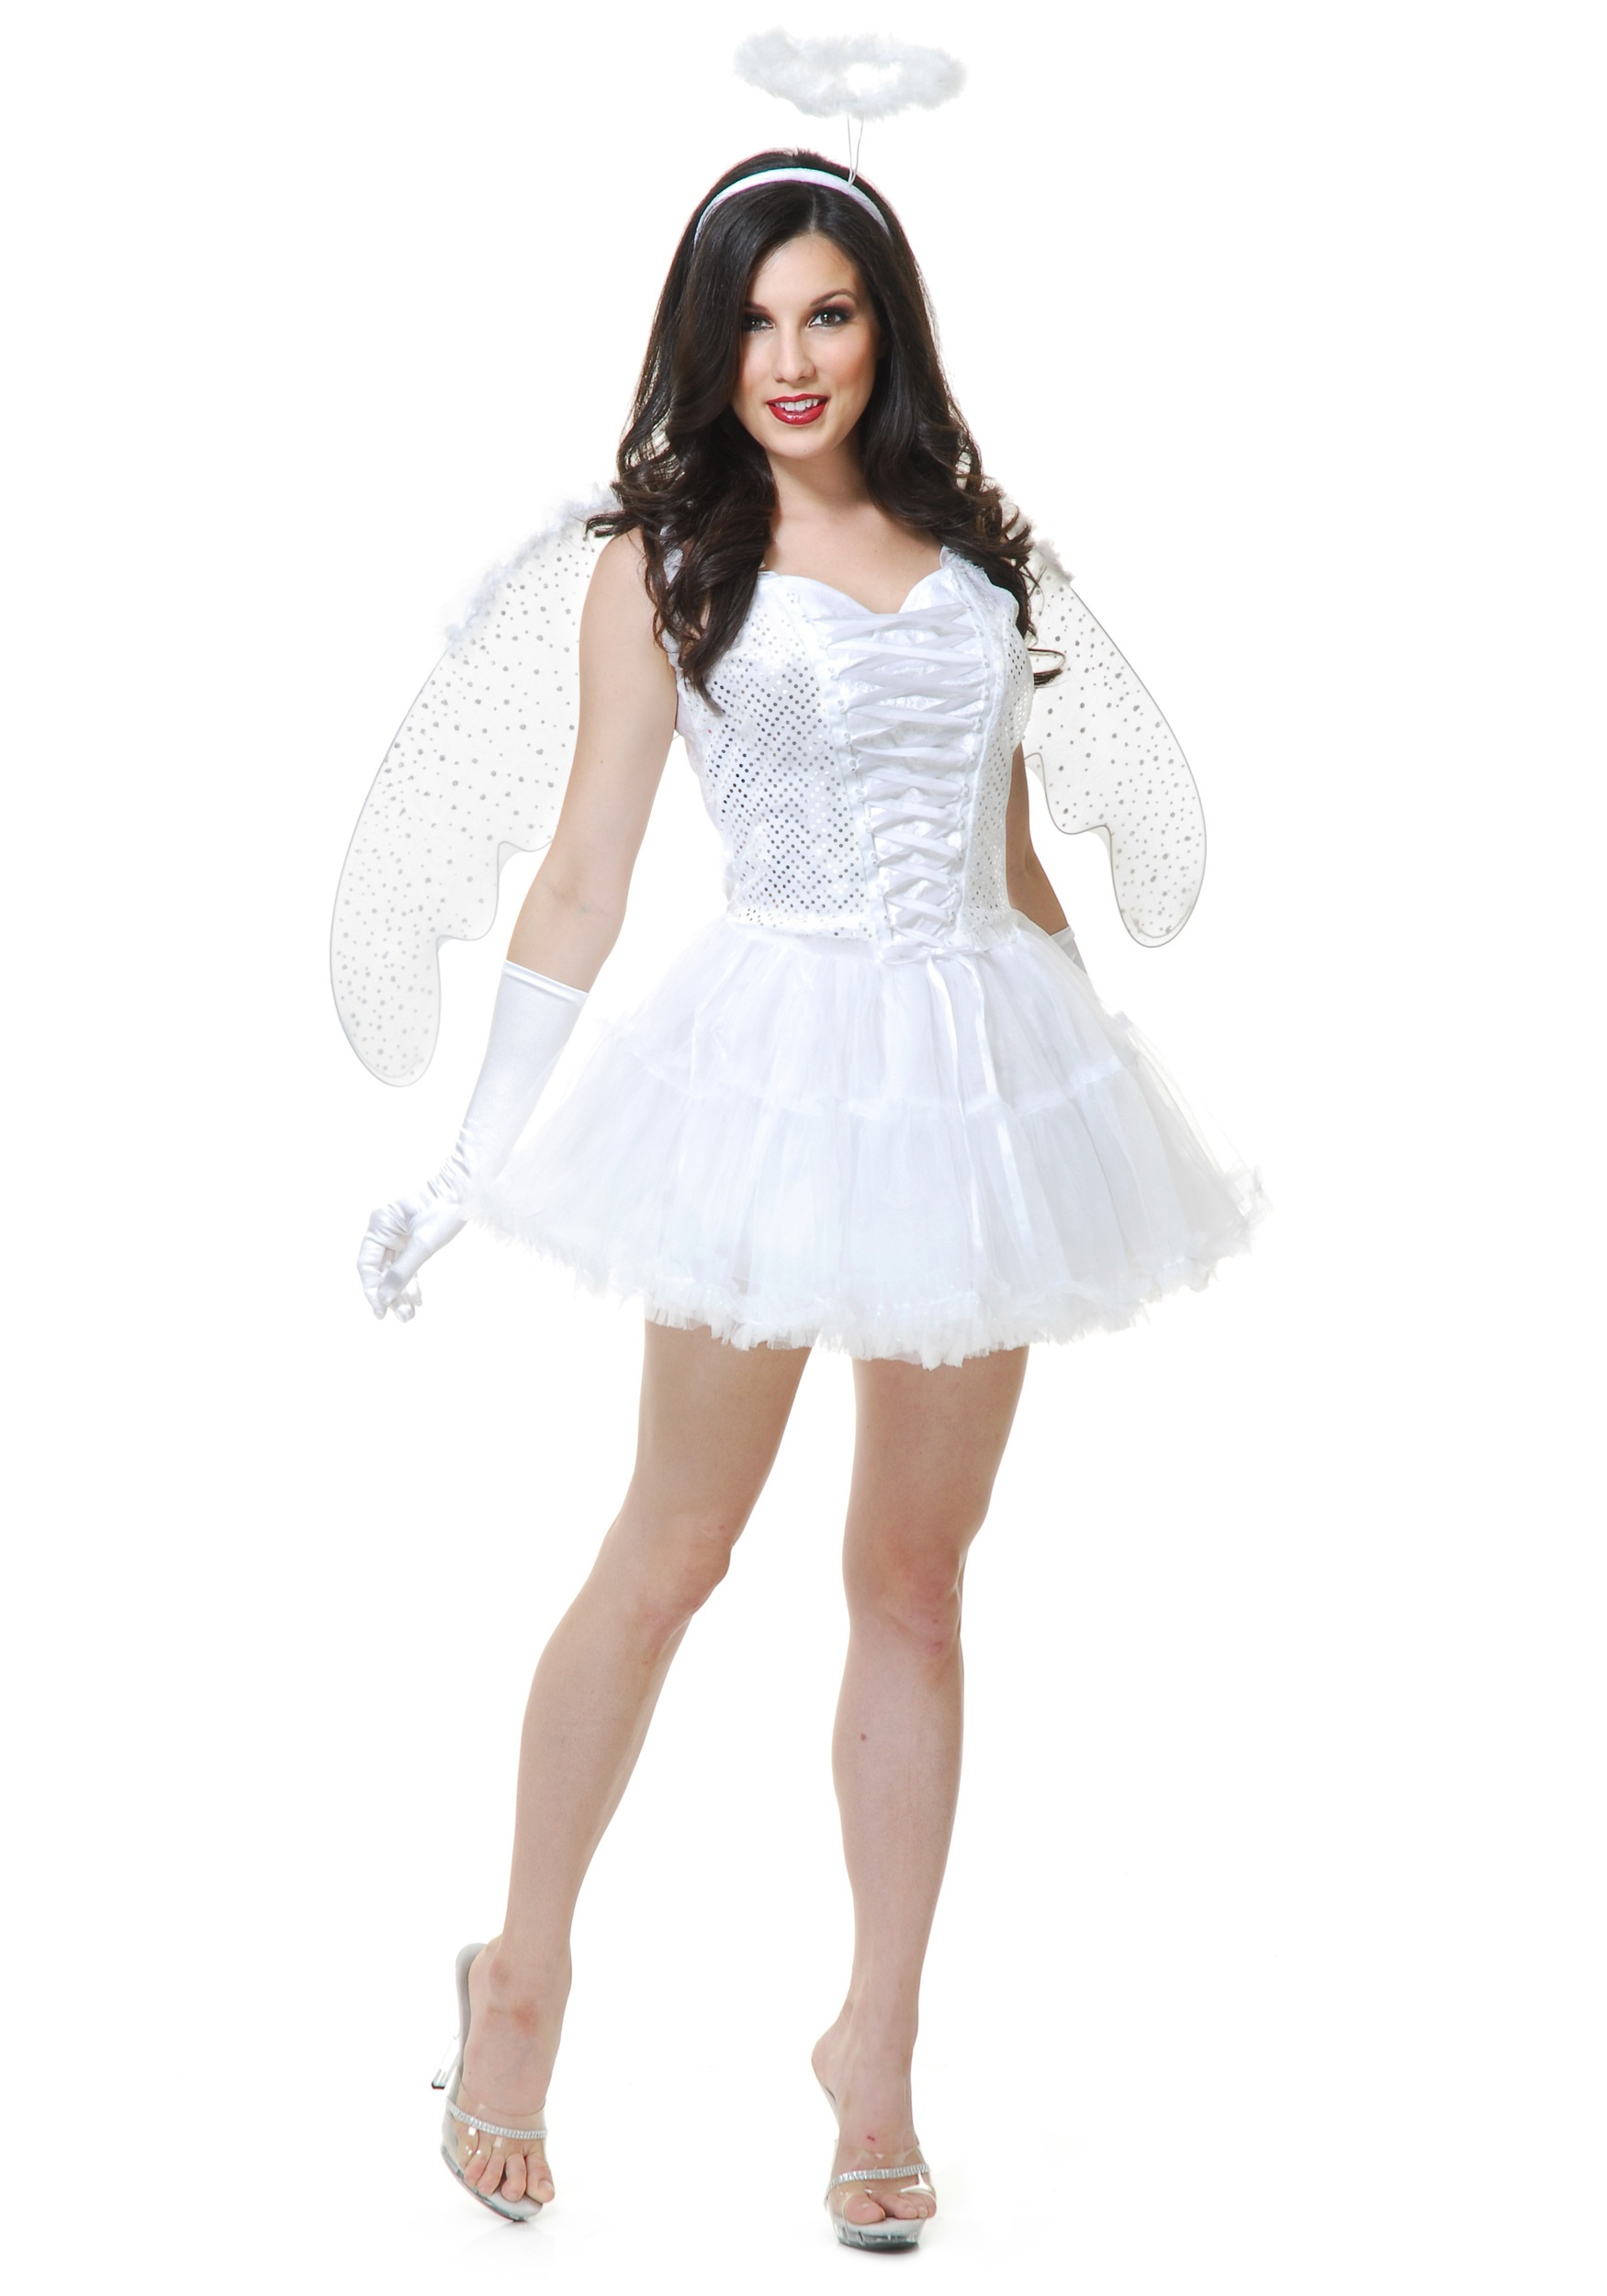 Congenial Angel Costume Angel Costume Halloween Costumes Angel Halloween Costume Makeup Angel Halloween Costume Captions baby Angel Halloween Costume